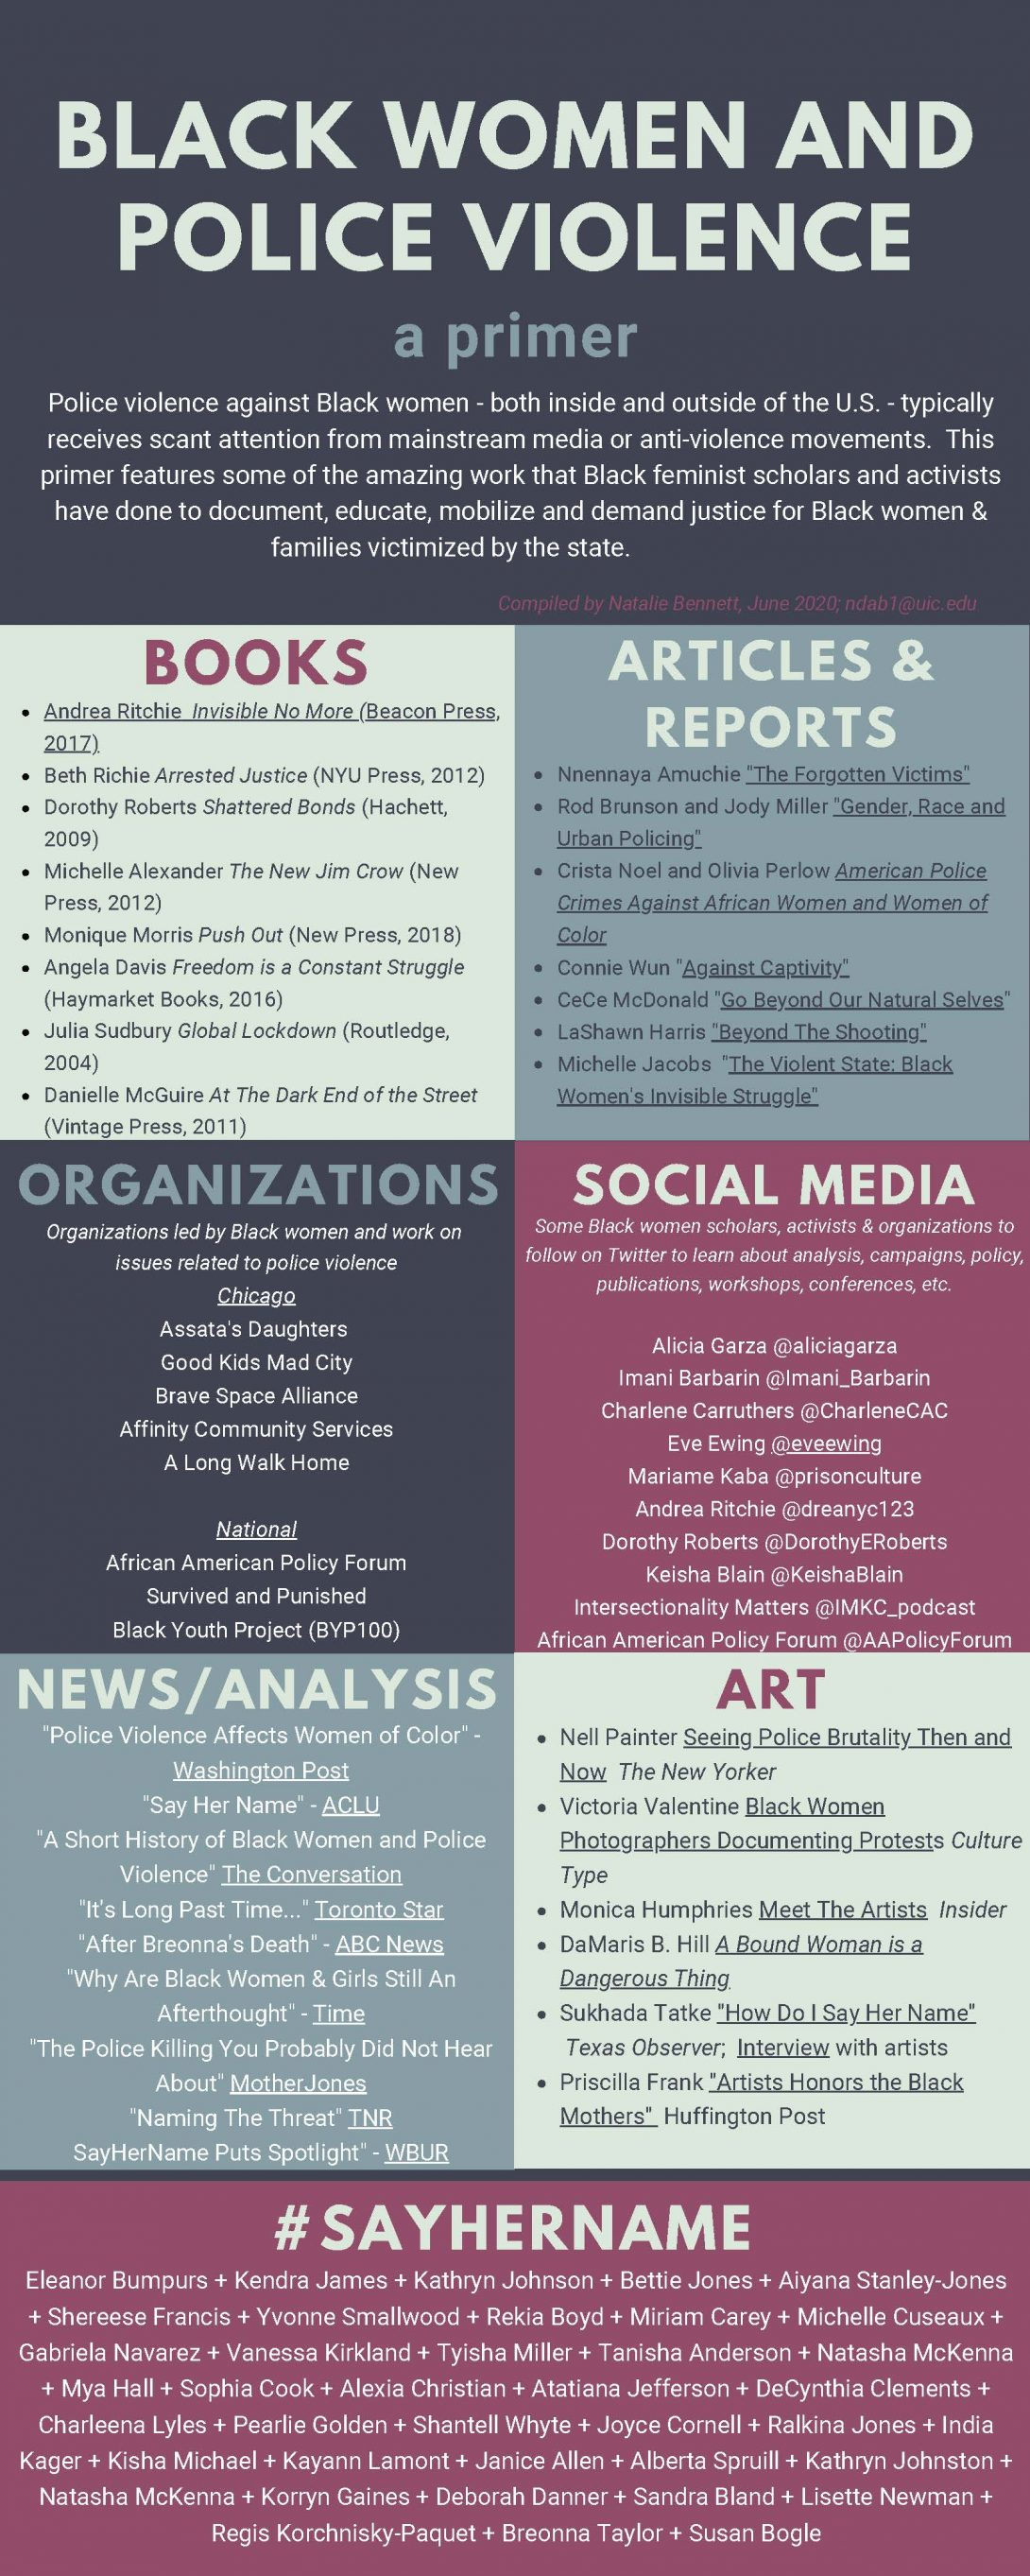 A chart of resources related to Black Women and Police Violence, with the following categories: books, articles and reports, organizations, social media, news and analysis, and art. At the bottom is written #SayHerName, followed by the names of Black women who were victims of police violence.